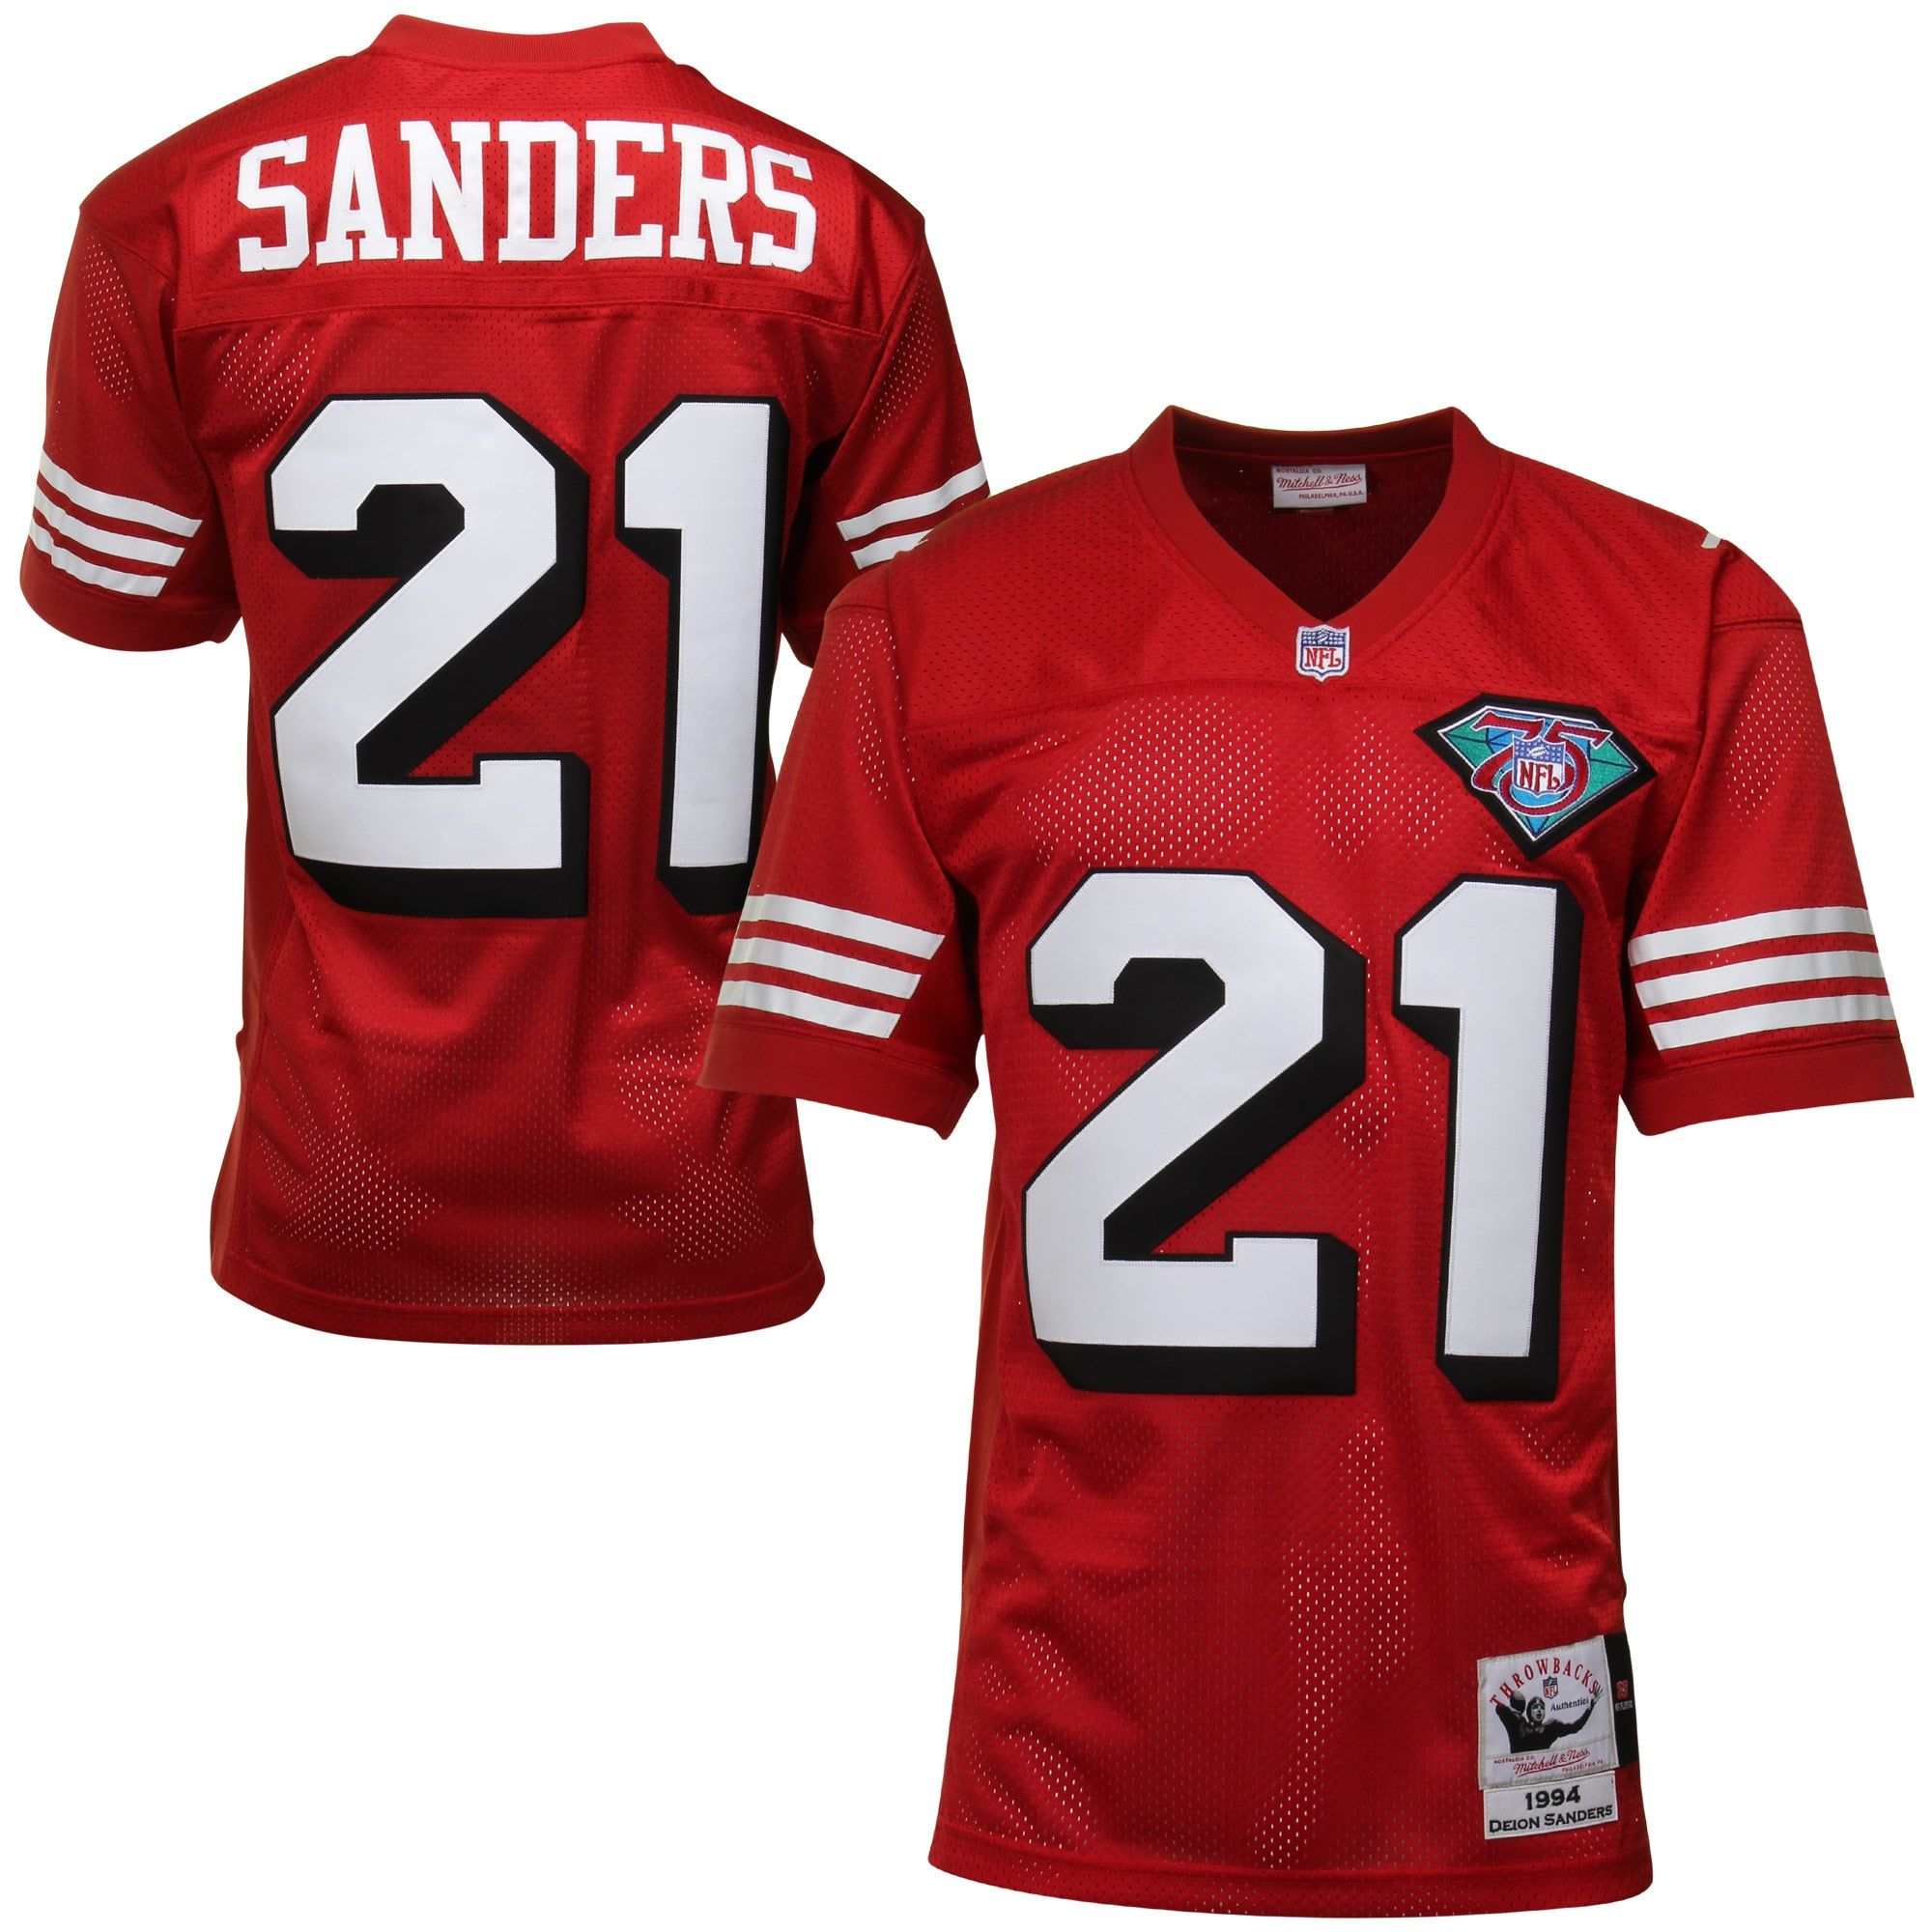 ... low cost 49ers 21 deion sanders white 75th throwback jersey deion  sanders san francisco 49ers mitchell 1996fb15e